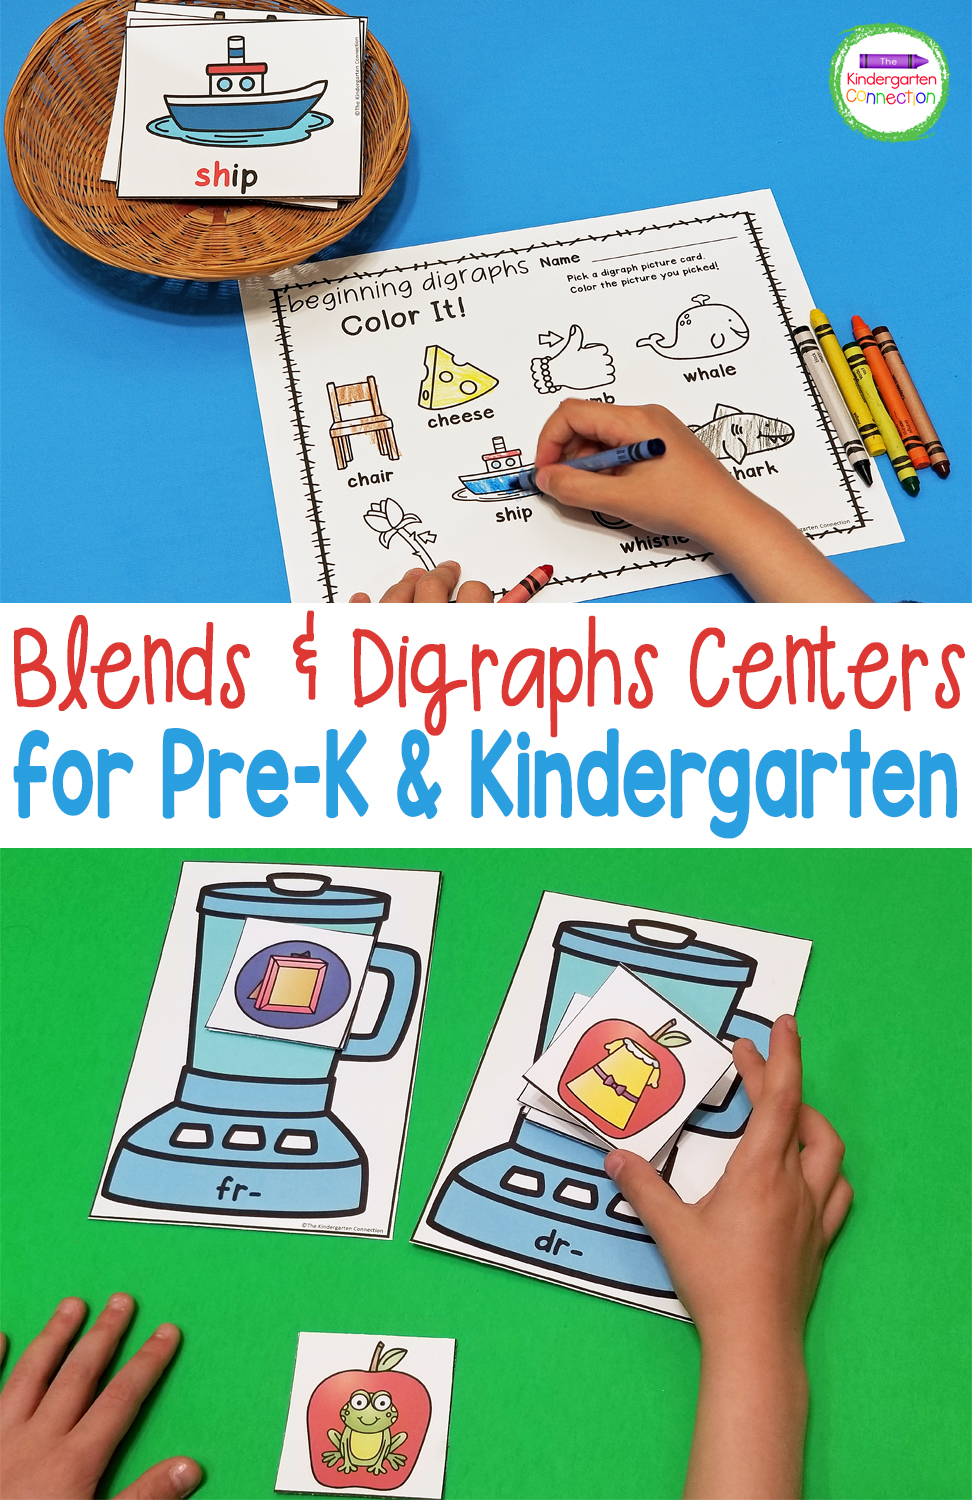 These Blends and Digraphs Activities and Centers will help early learners practice important reading skills in a hands-on and engaging way!